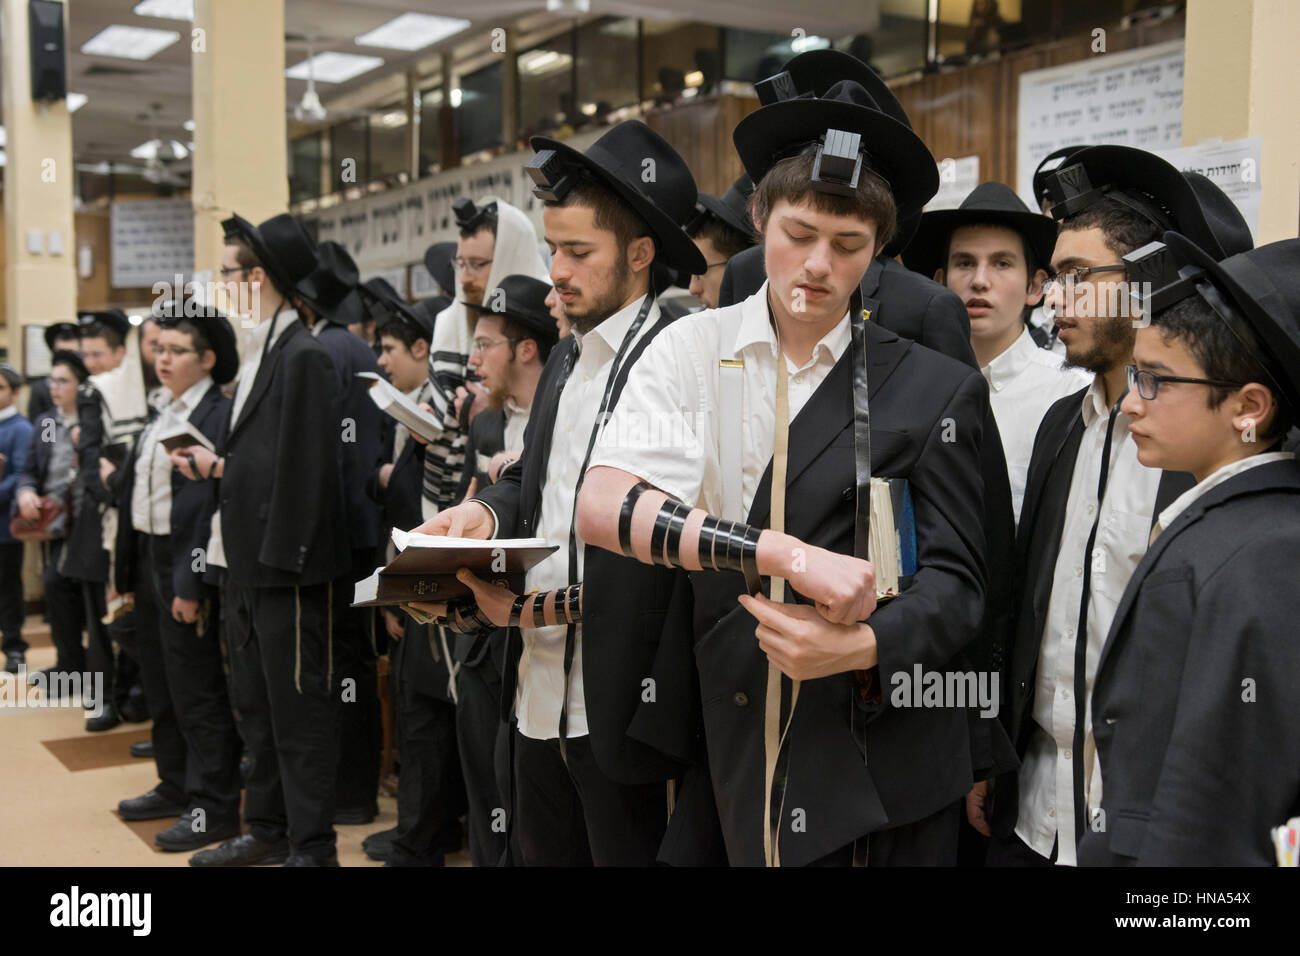 Orthodox Jewish young man putting on phylacteries prior to morning services at a crowded synagogue in Brooklyn, - Stock Image